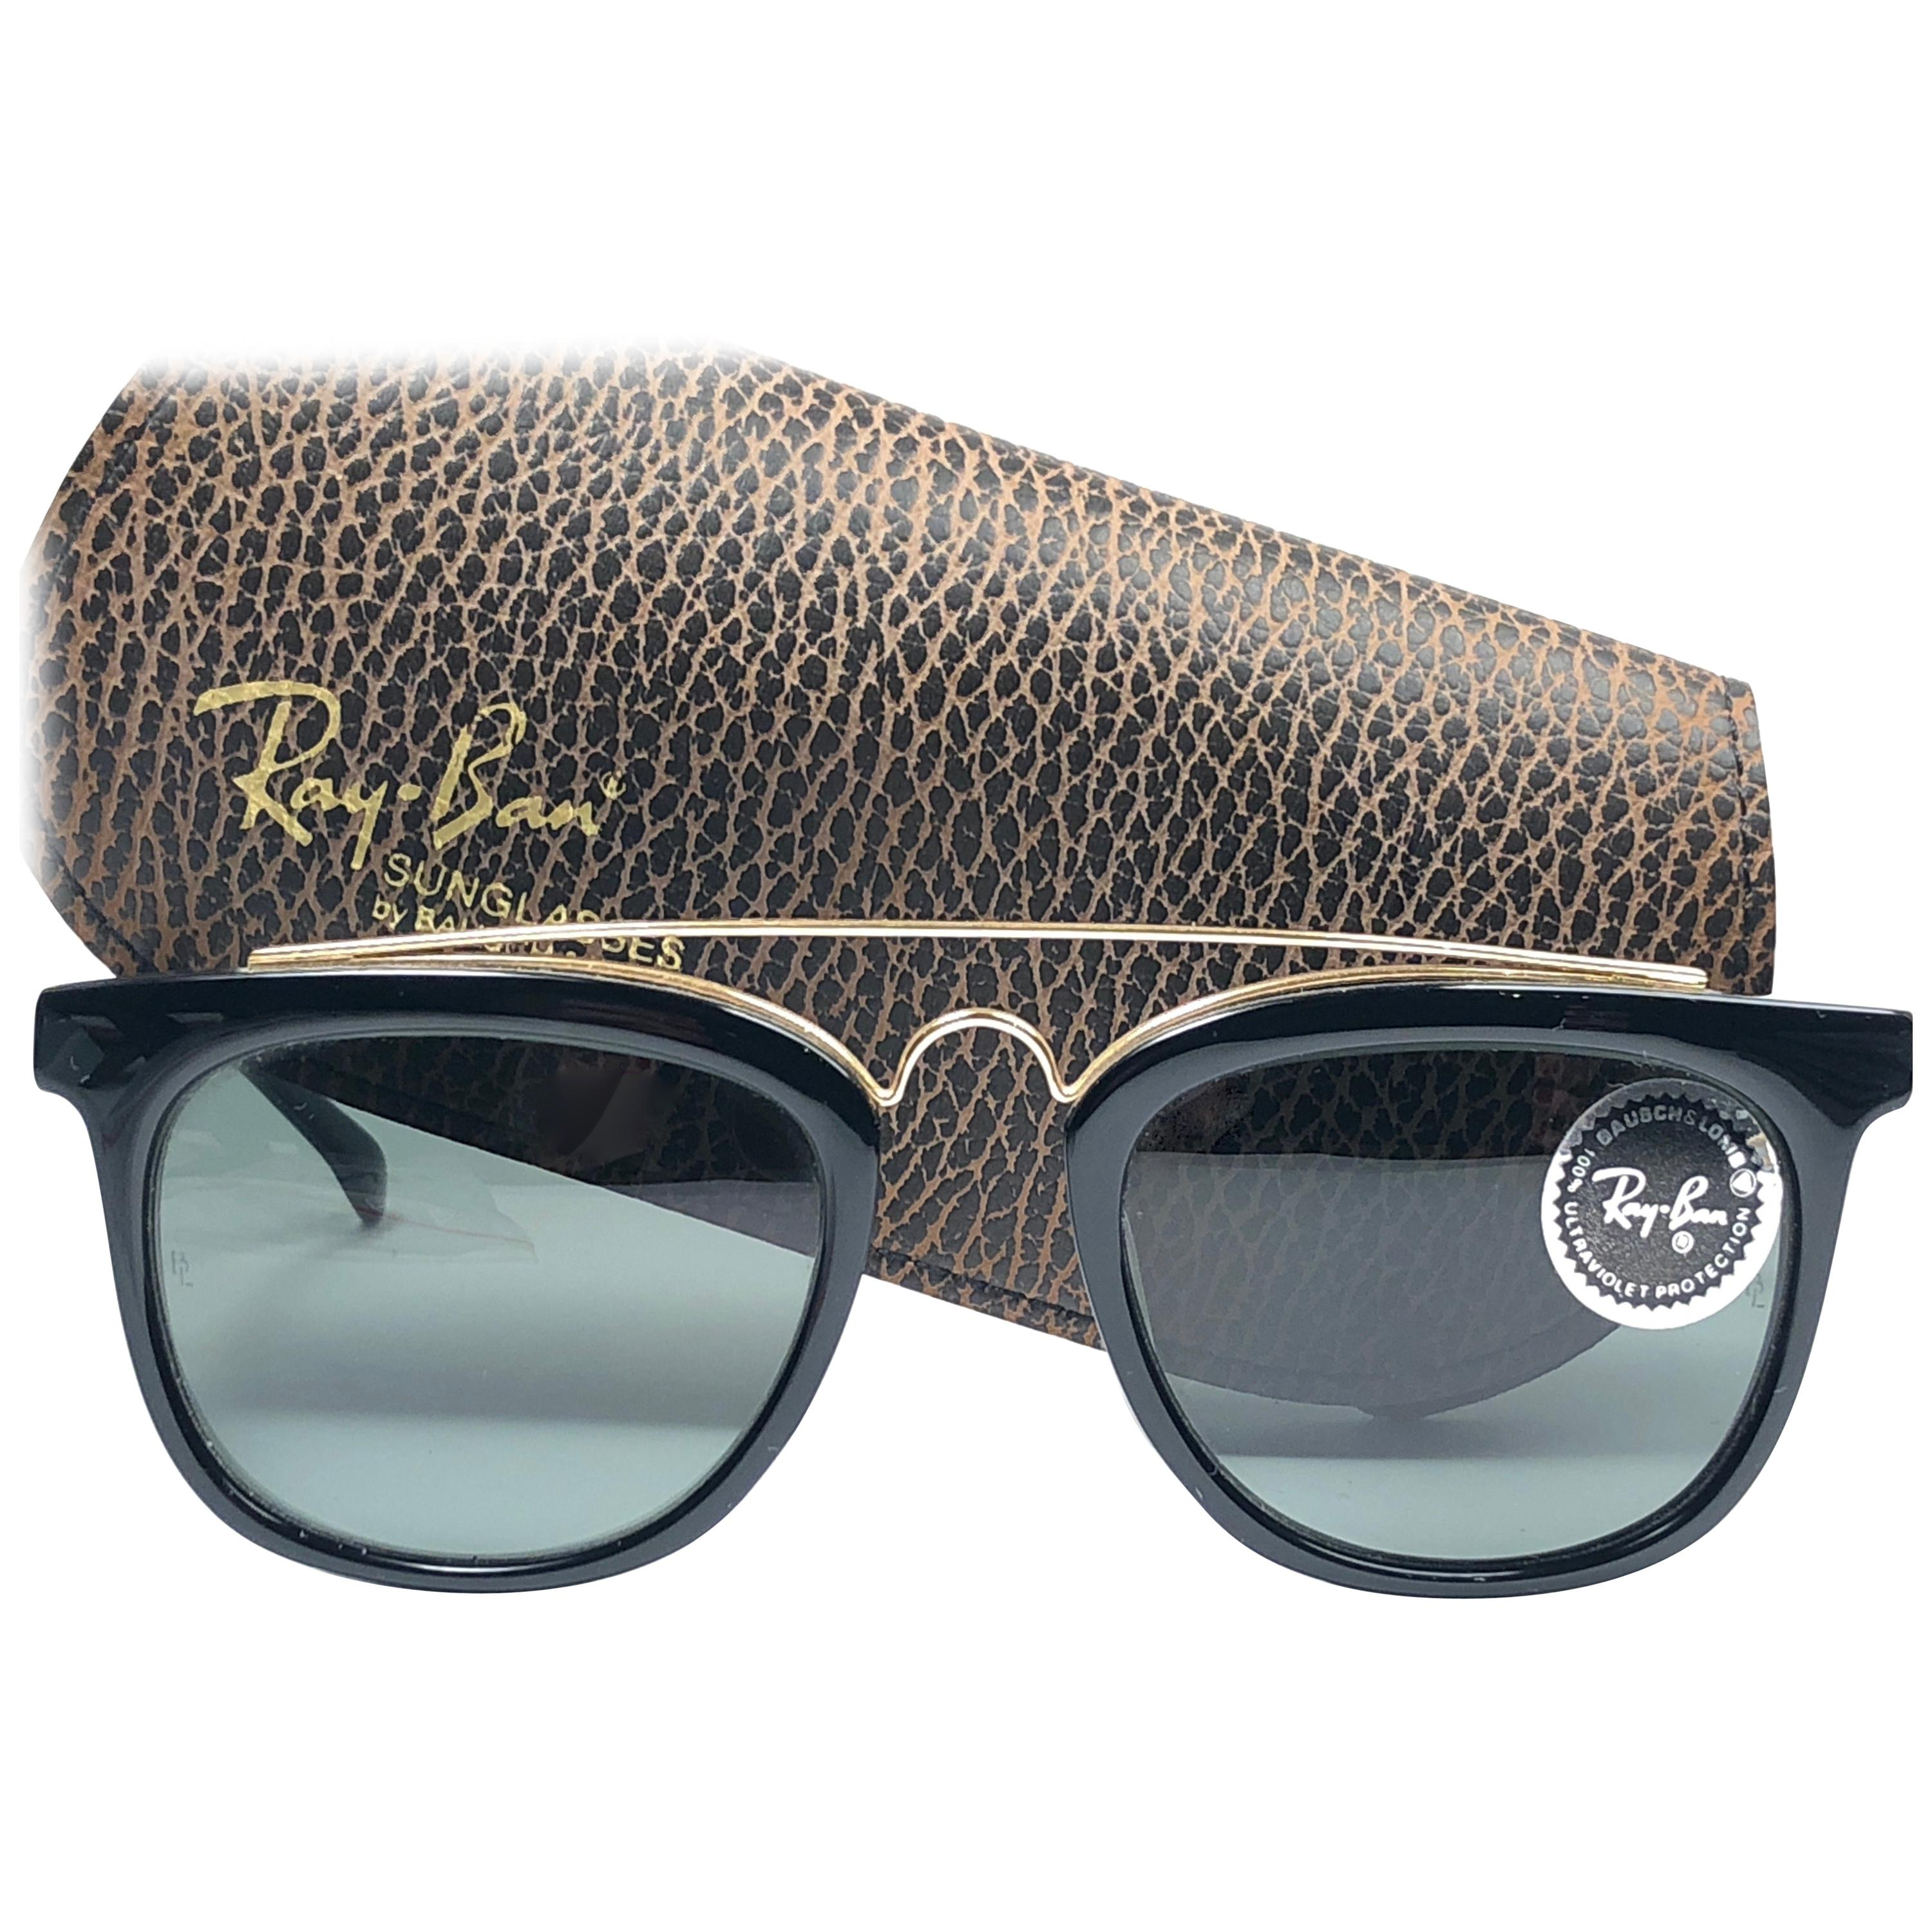 5ae8a0ff44 Vintage Ray-Ban Sunglasses - 151 For Sale at 1stdibs